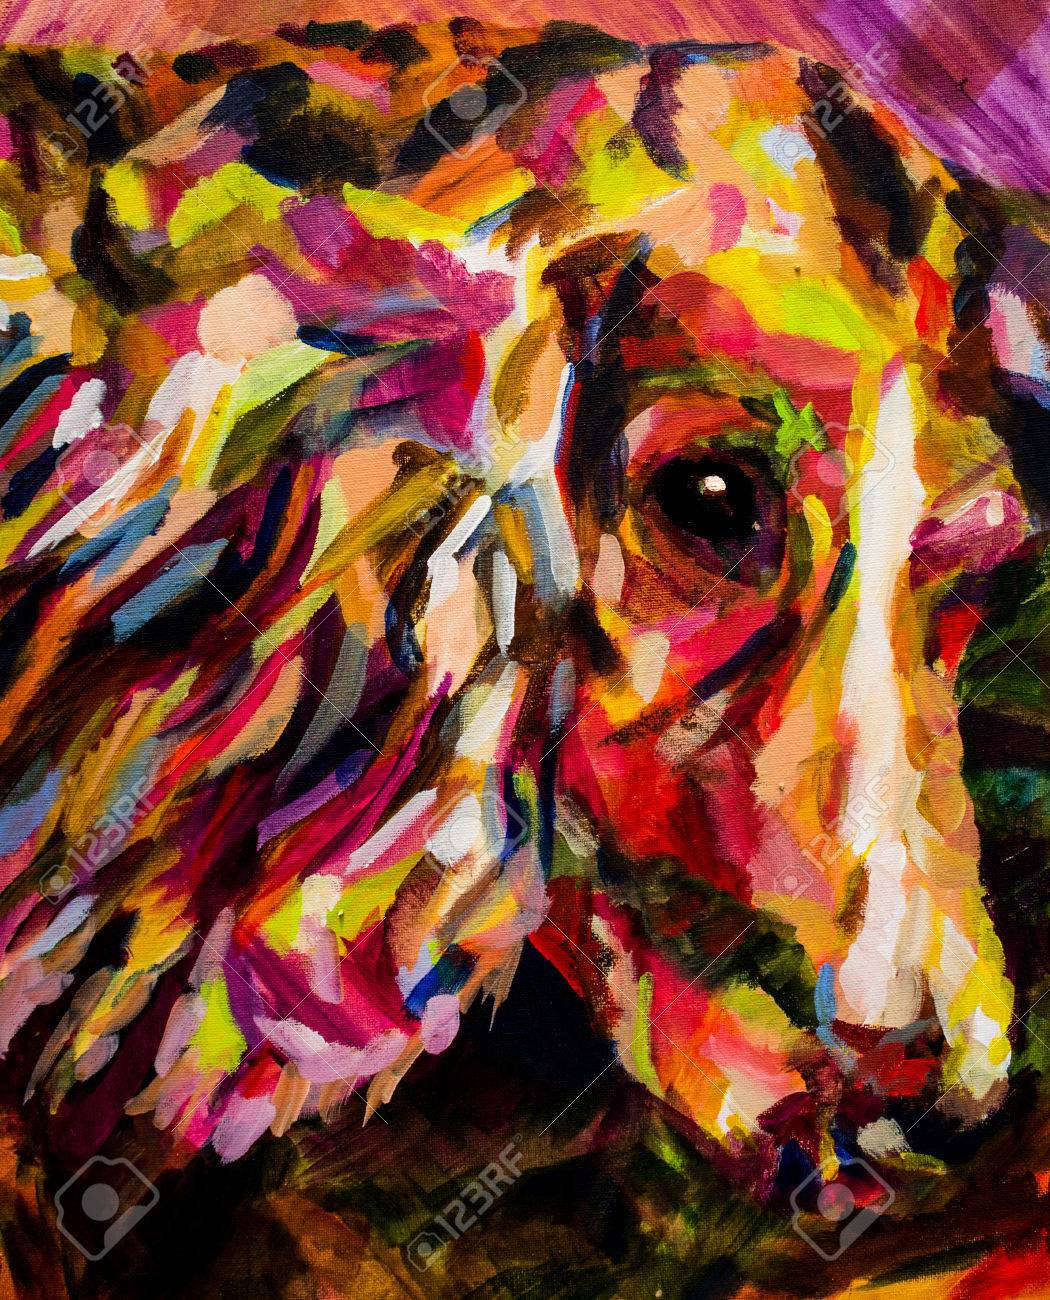 Bright Colours Painting Acrylic Contemporary Painting Of Spaniel Dog In Bright Colours